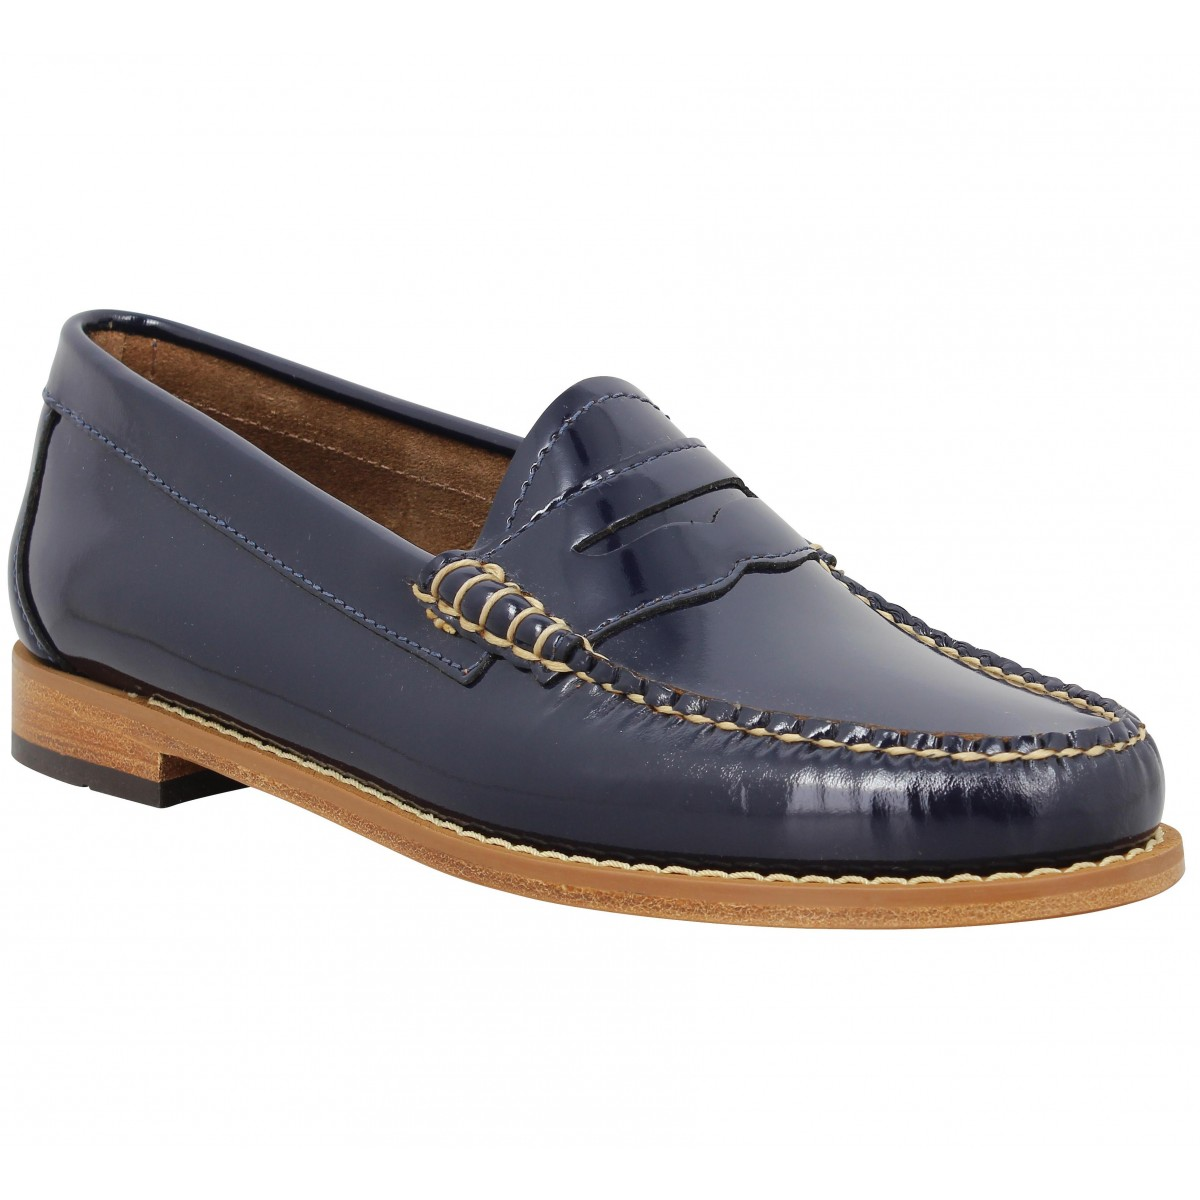 Mocassins GH BASS & CO Weejun Penny Wheel vernis Femme Navy